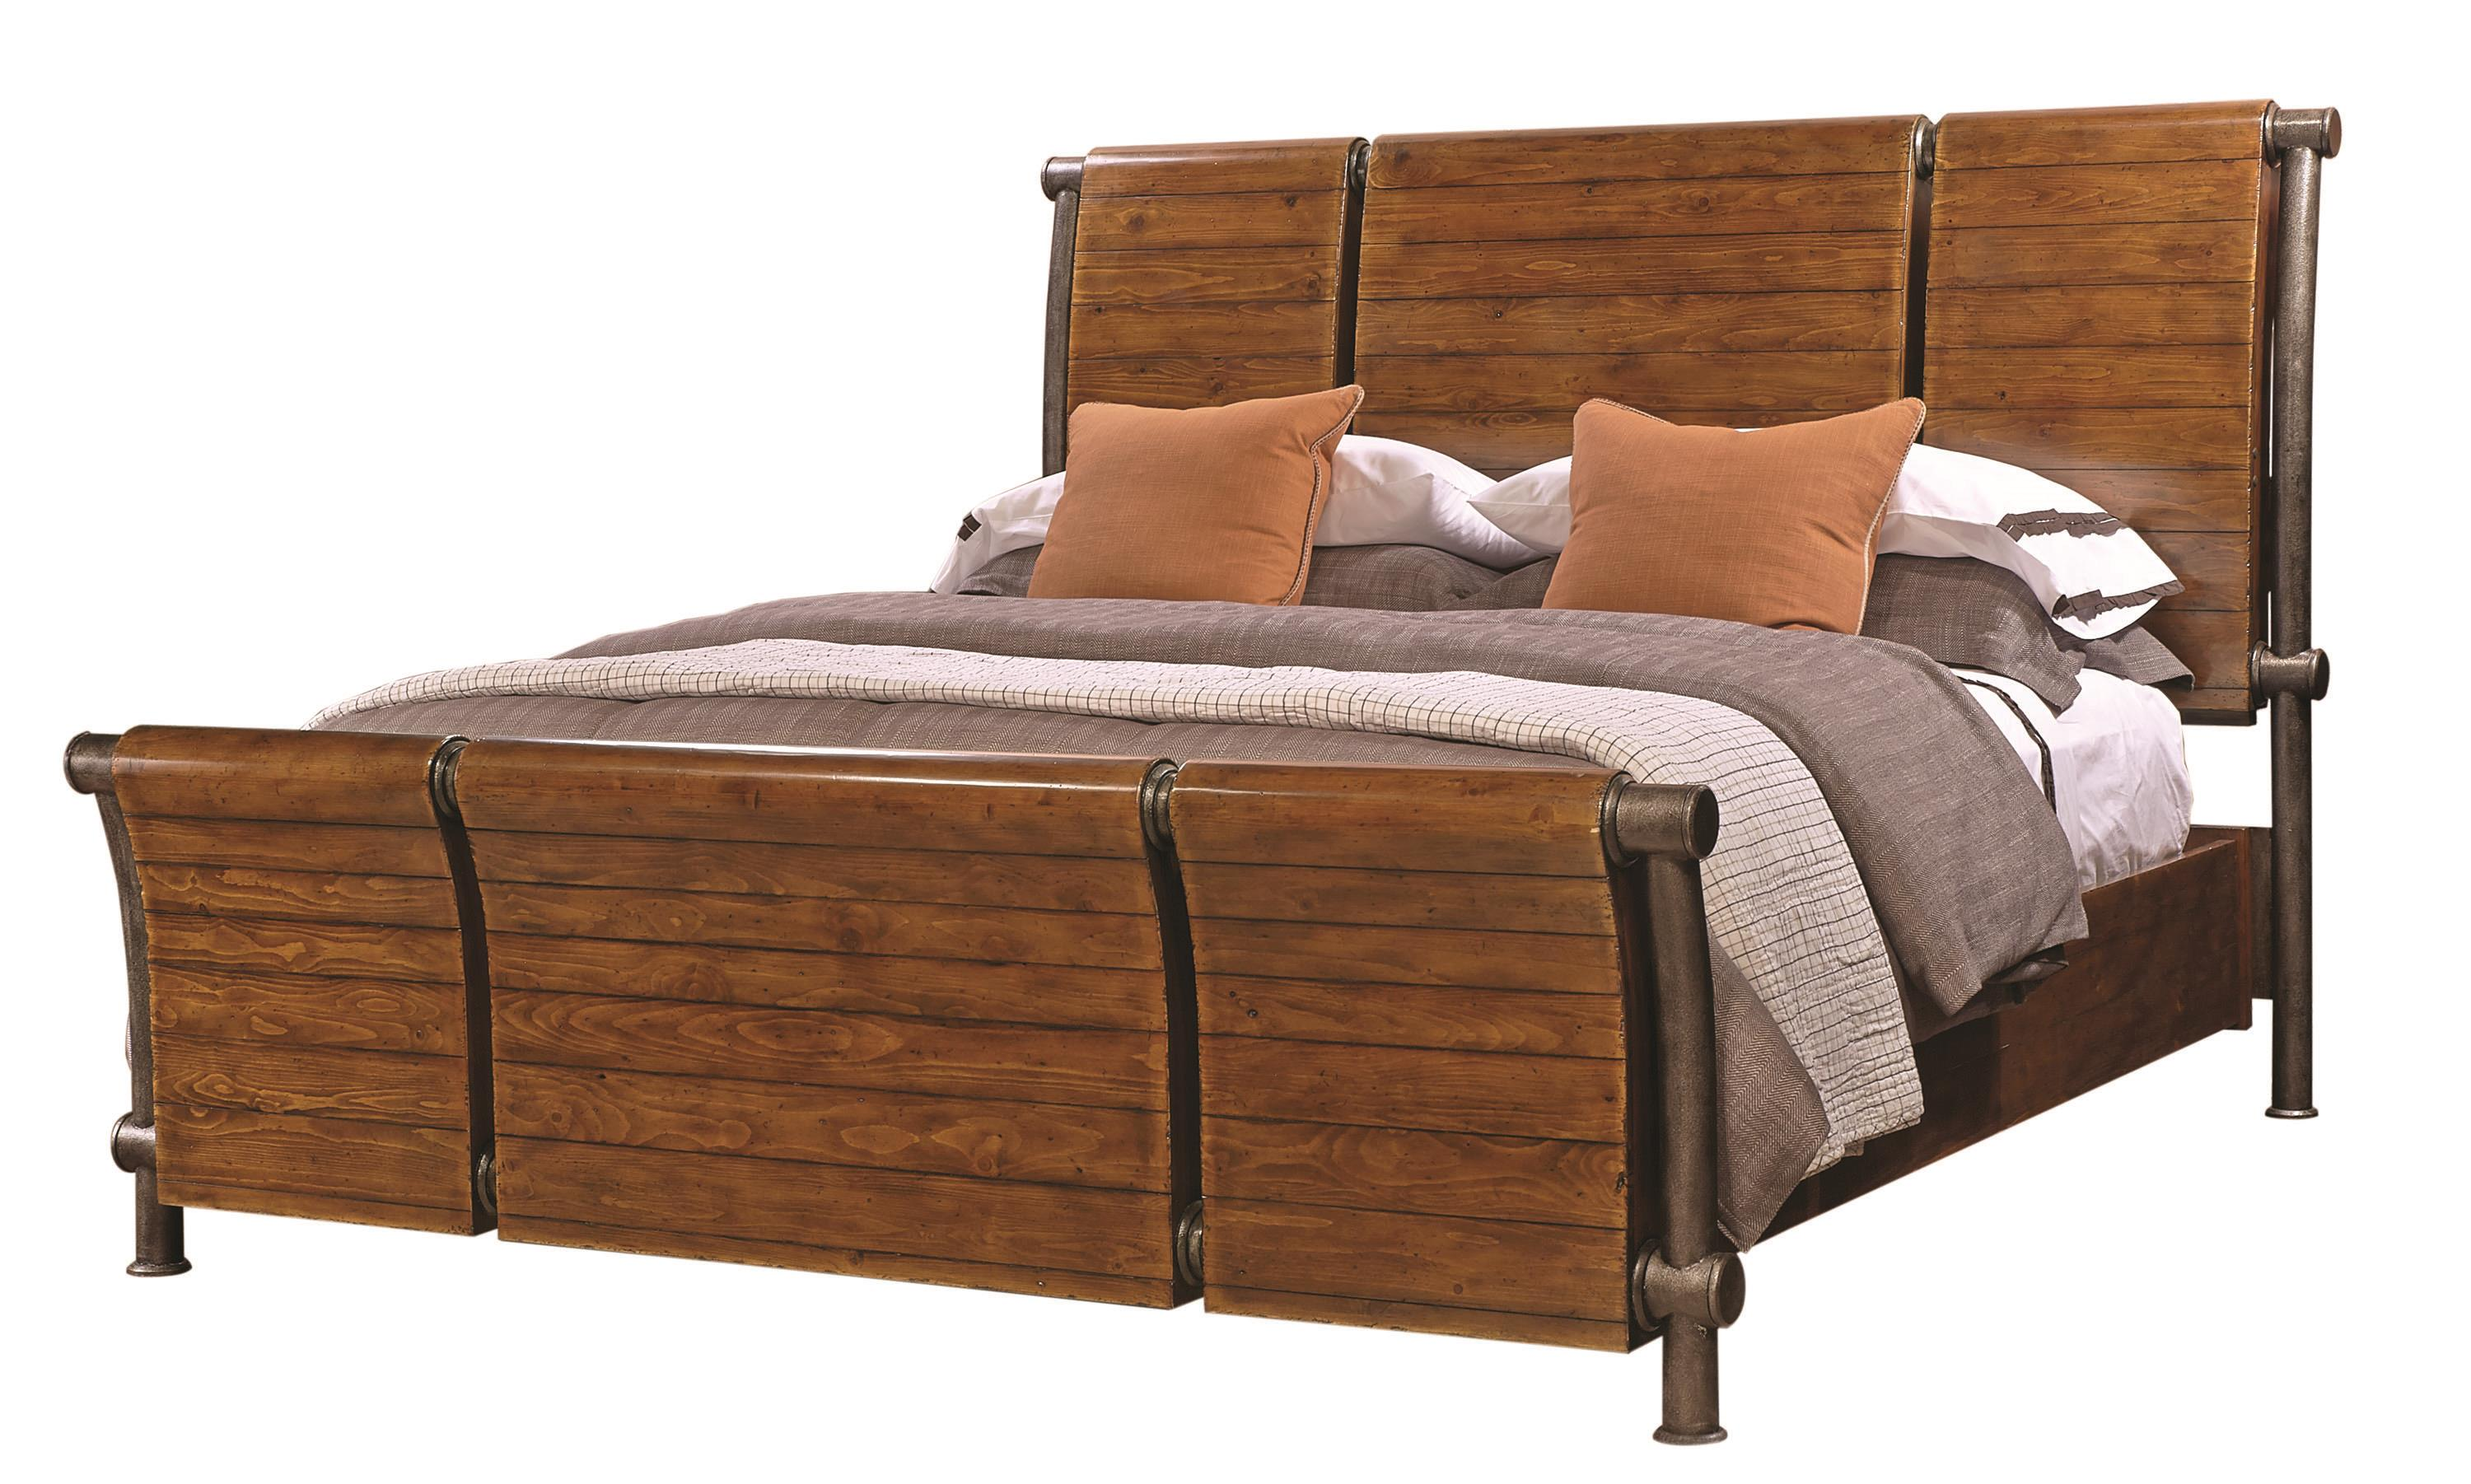 Aspenhome Rockland King Sleigh Bed - Item Number: I58-404+405+406